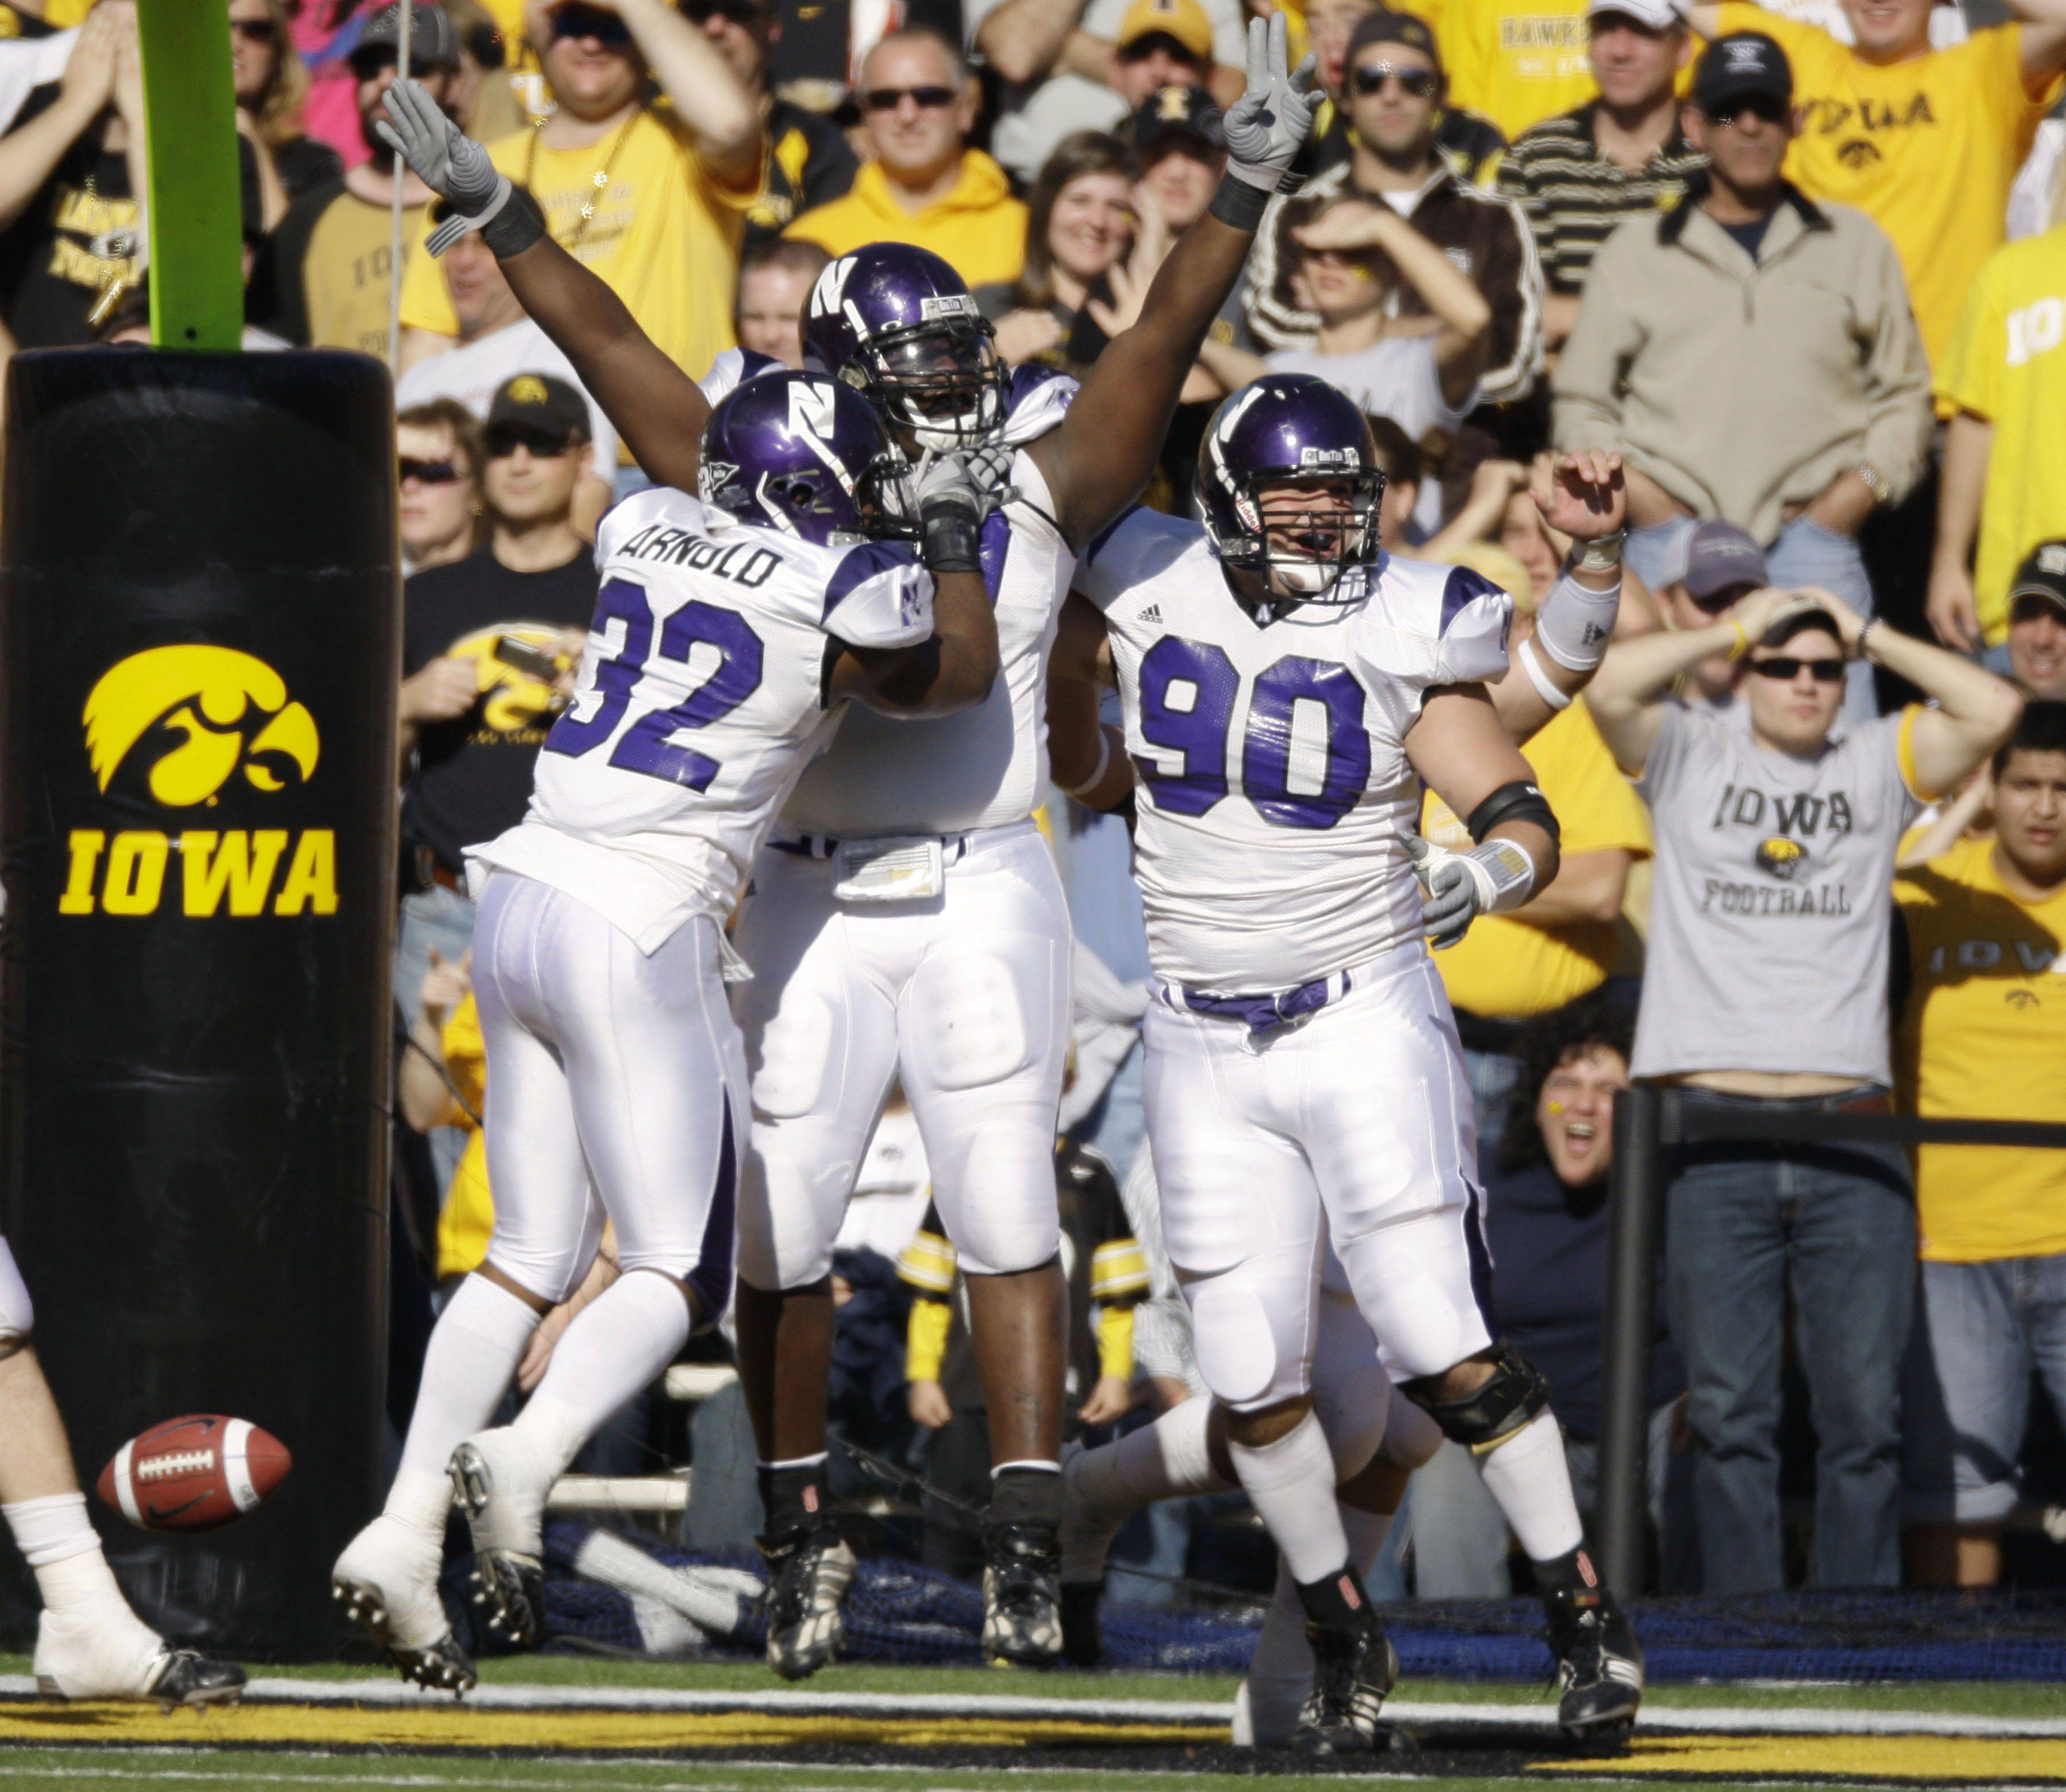 Northwestern's Marshall Thomas, center, celebrates with teammates David Arnold, left, and Jack DiNardo, right, after he recovered an Iowa fumble for a touchdown against Iowa in 2009.